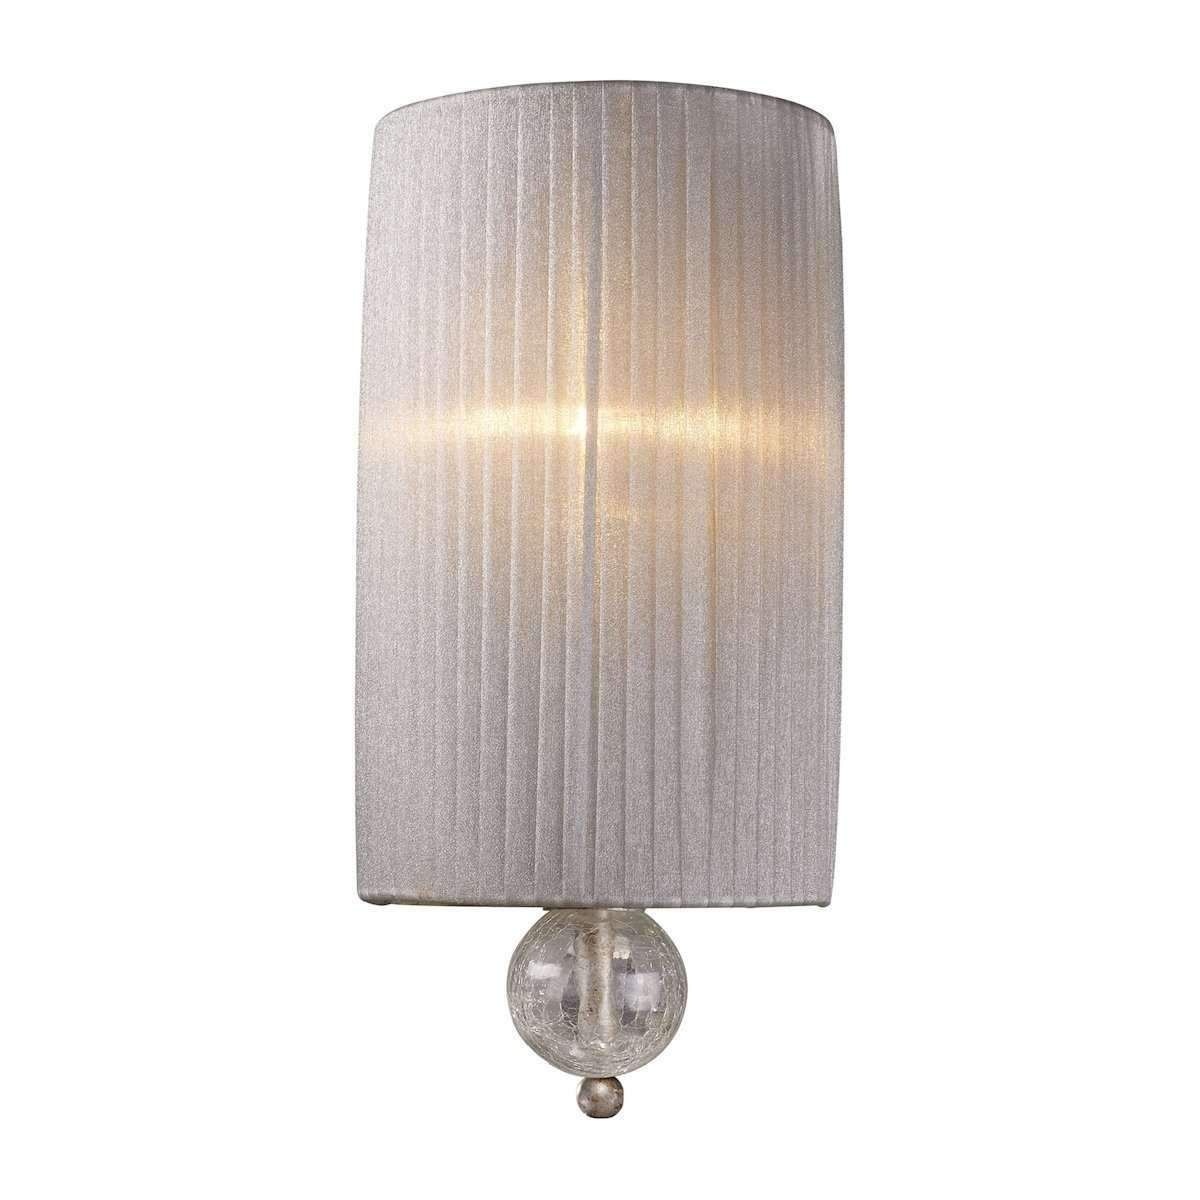 Alexis 1 Light Wall Sconce In Antique Silver by ELK